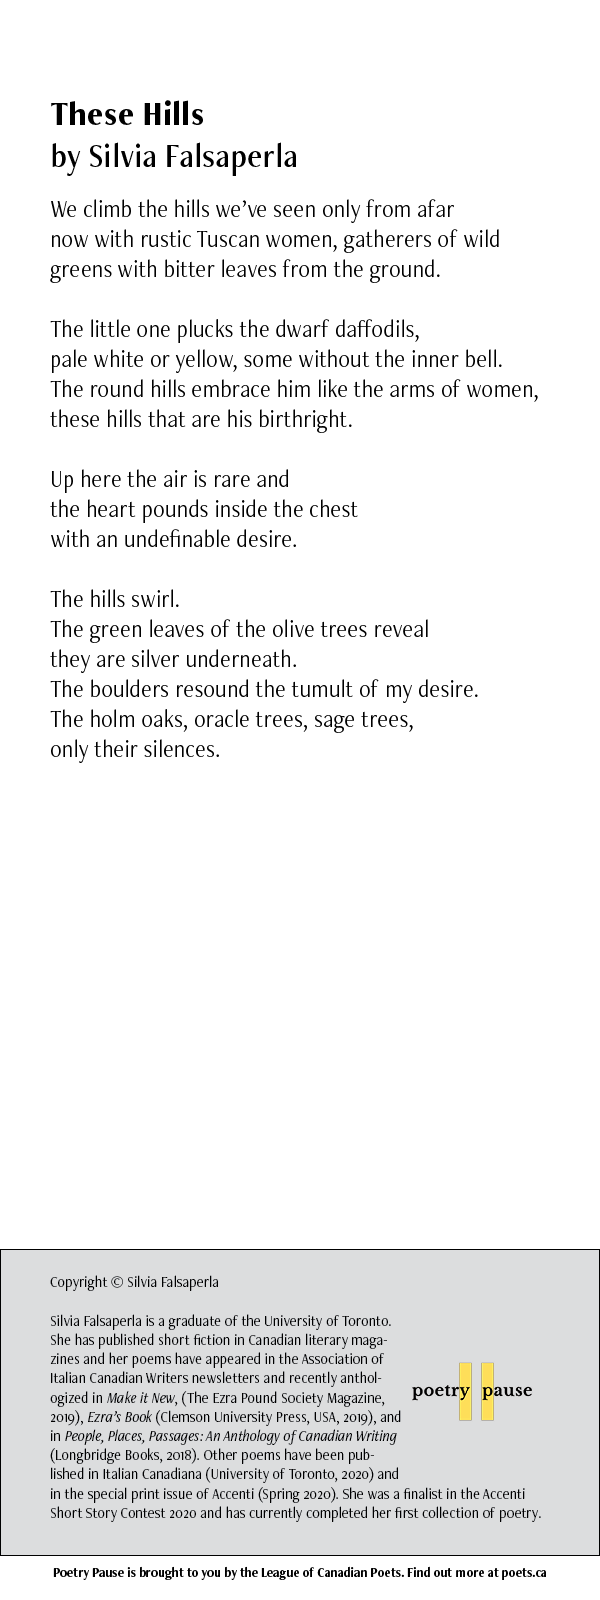 Poet: Silvia Falsaperla Poem title: These Hills Poem: We climb the hills we've seen only from afar now with rustic Tuscan women, gatherers of wild greens with bitter leaves from the ground. The little one plucks the dwarf daffodils, pale white or yellow, some without the inner bell. The round hills embrace him like the arms of women, these hills that are his birthright. Up here the air is rare and the heart pounds inside the chest with an undefinable desire. The hills swirl. The green leaves of the olive trees reveal they are silver underneath. The boulders resound the tumult of my desire. The holm oaks, oracle trees, sage trees, only their silences. End of poem. Credits: Copyright © Silvia Falsaperla Silvia Falsaperla is a graduate of the University of Toronto. She has published short fiction in Canadian literary magazines and her poems have appeared in the Association of Italian Canadian Writers newsletters and recently anthologized in Make it New, (The Ezra Pound Society Magazine, 2019), Ezra's Book (Clemson University Press, USA, 2019), and in People, Places, Passages: An Anthology of Canadian Writing (Longbridge Books, 2018). Other poems have been published in Italian Canadiana (University of Toronto, 2020) and in the special print issue of Accenti (Spring 2020). She was a finalist in the Accenti Short Story Contest 2020 and has currently completed her first collection of poetry.